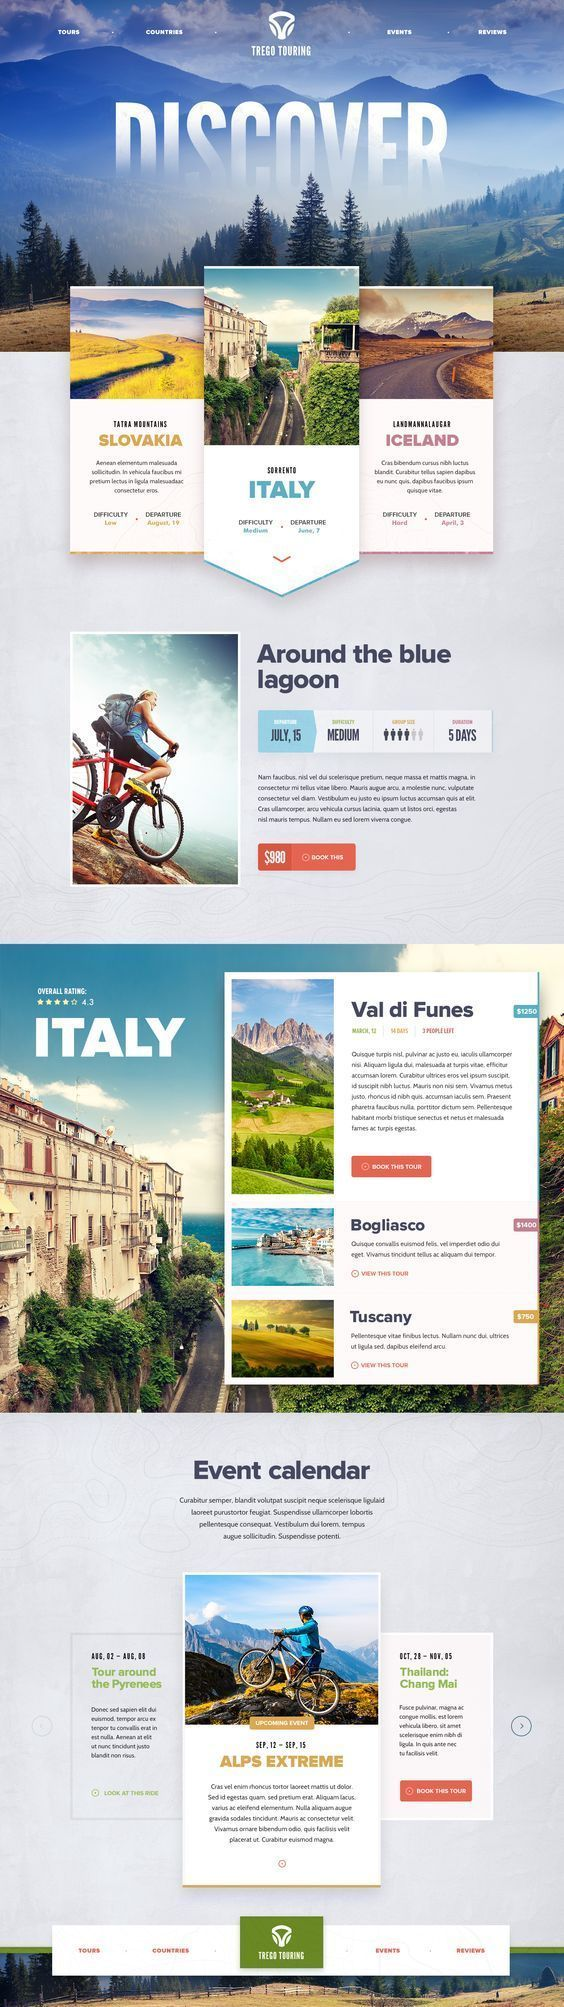 Trego Touring Guided Bicycle Tours